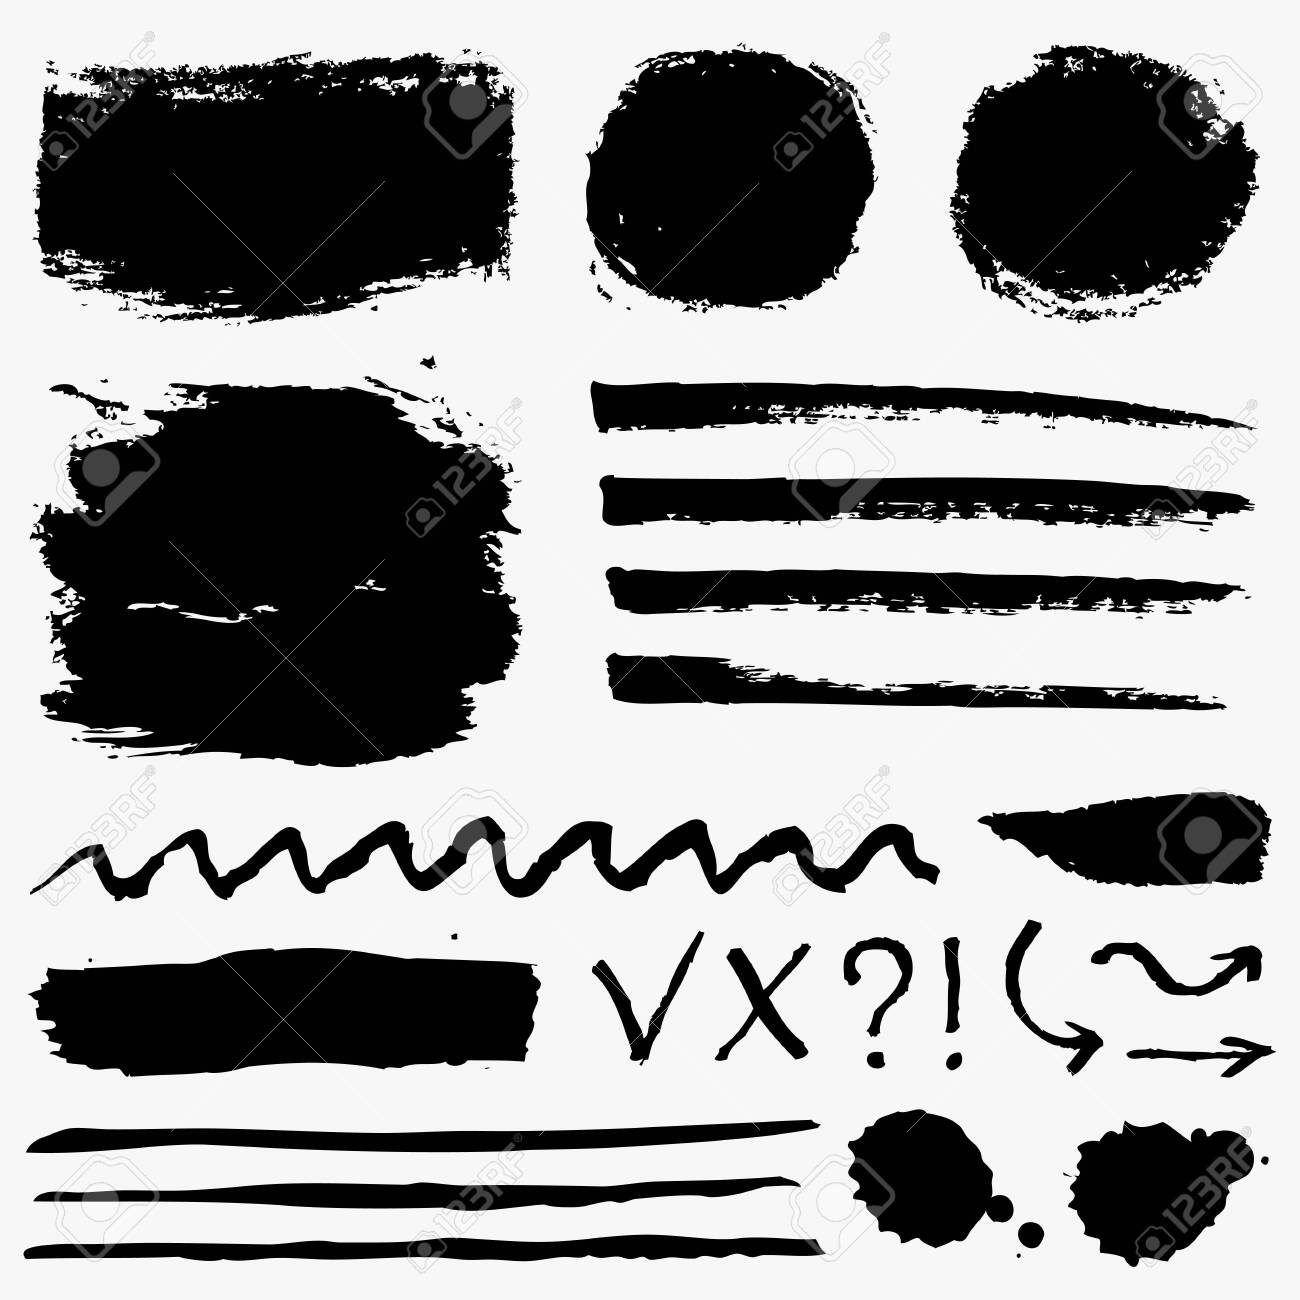 Paint brush strokes, grunge stains and symbols isolated on white background. Black vector design elements for paintbrush texture, frame, background, banner or text box. Freehand drawing collection. - 123230522